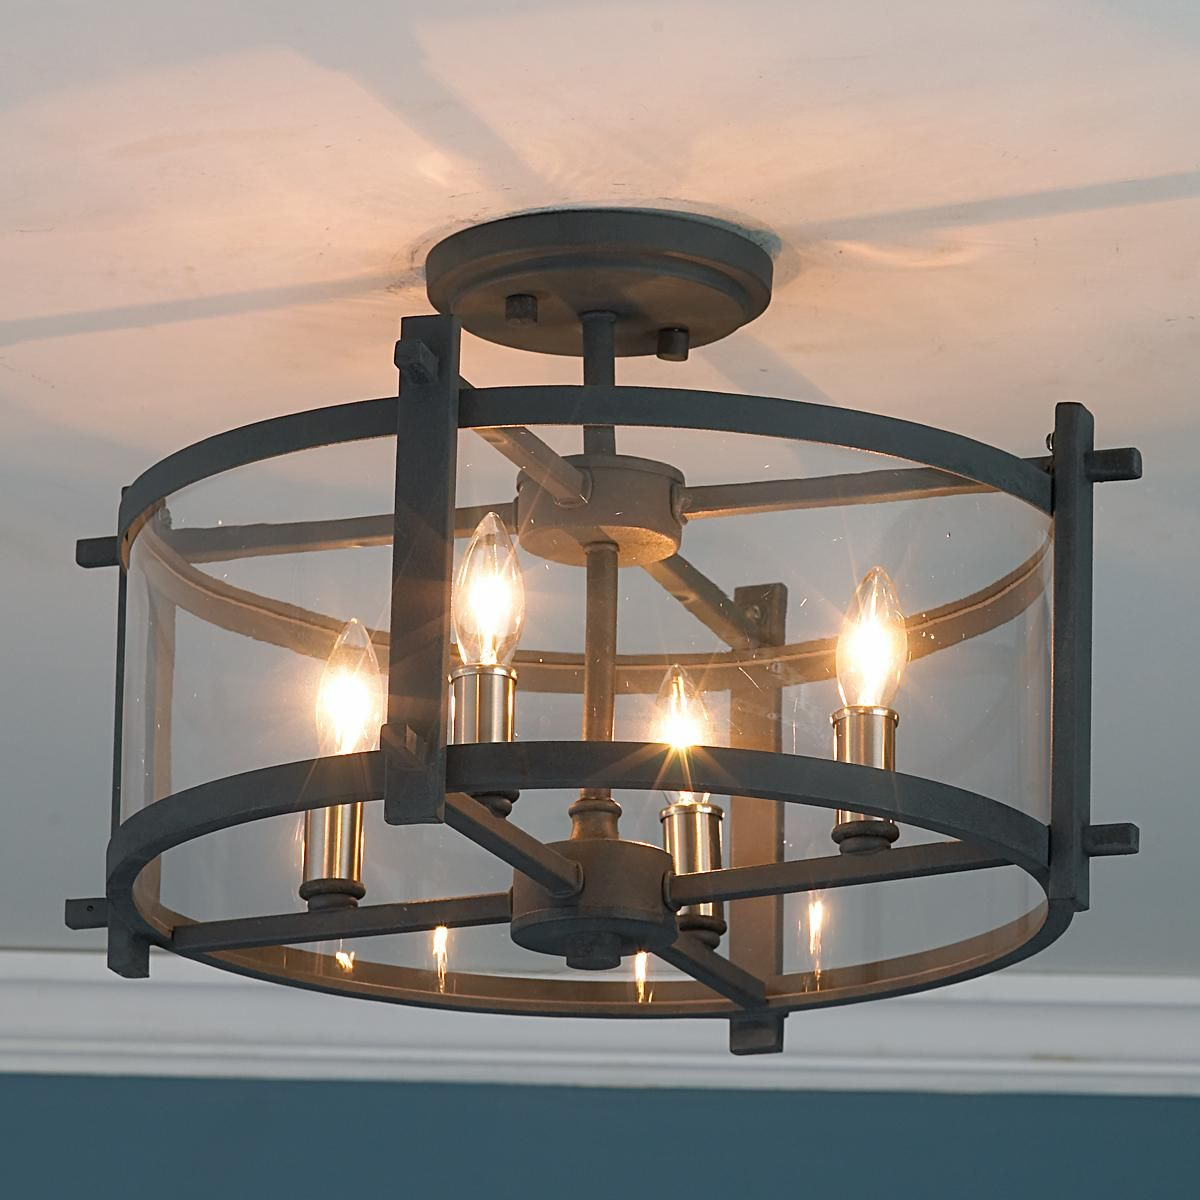 casual celing and hadley on pinterest best living ballard room plank classic ceiling for lighting from house wood light home delmarfans before images lights ranch